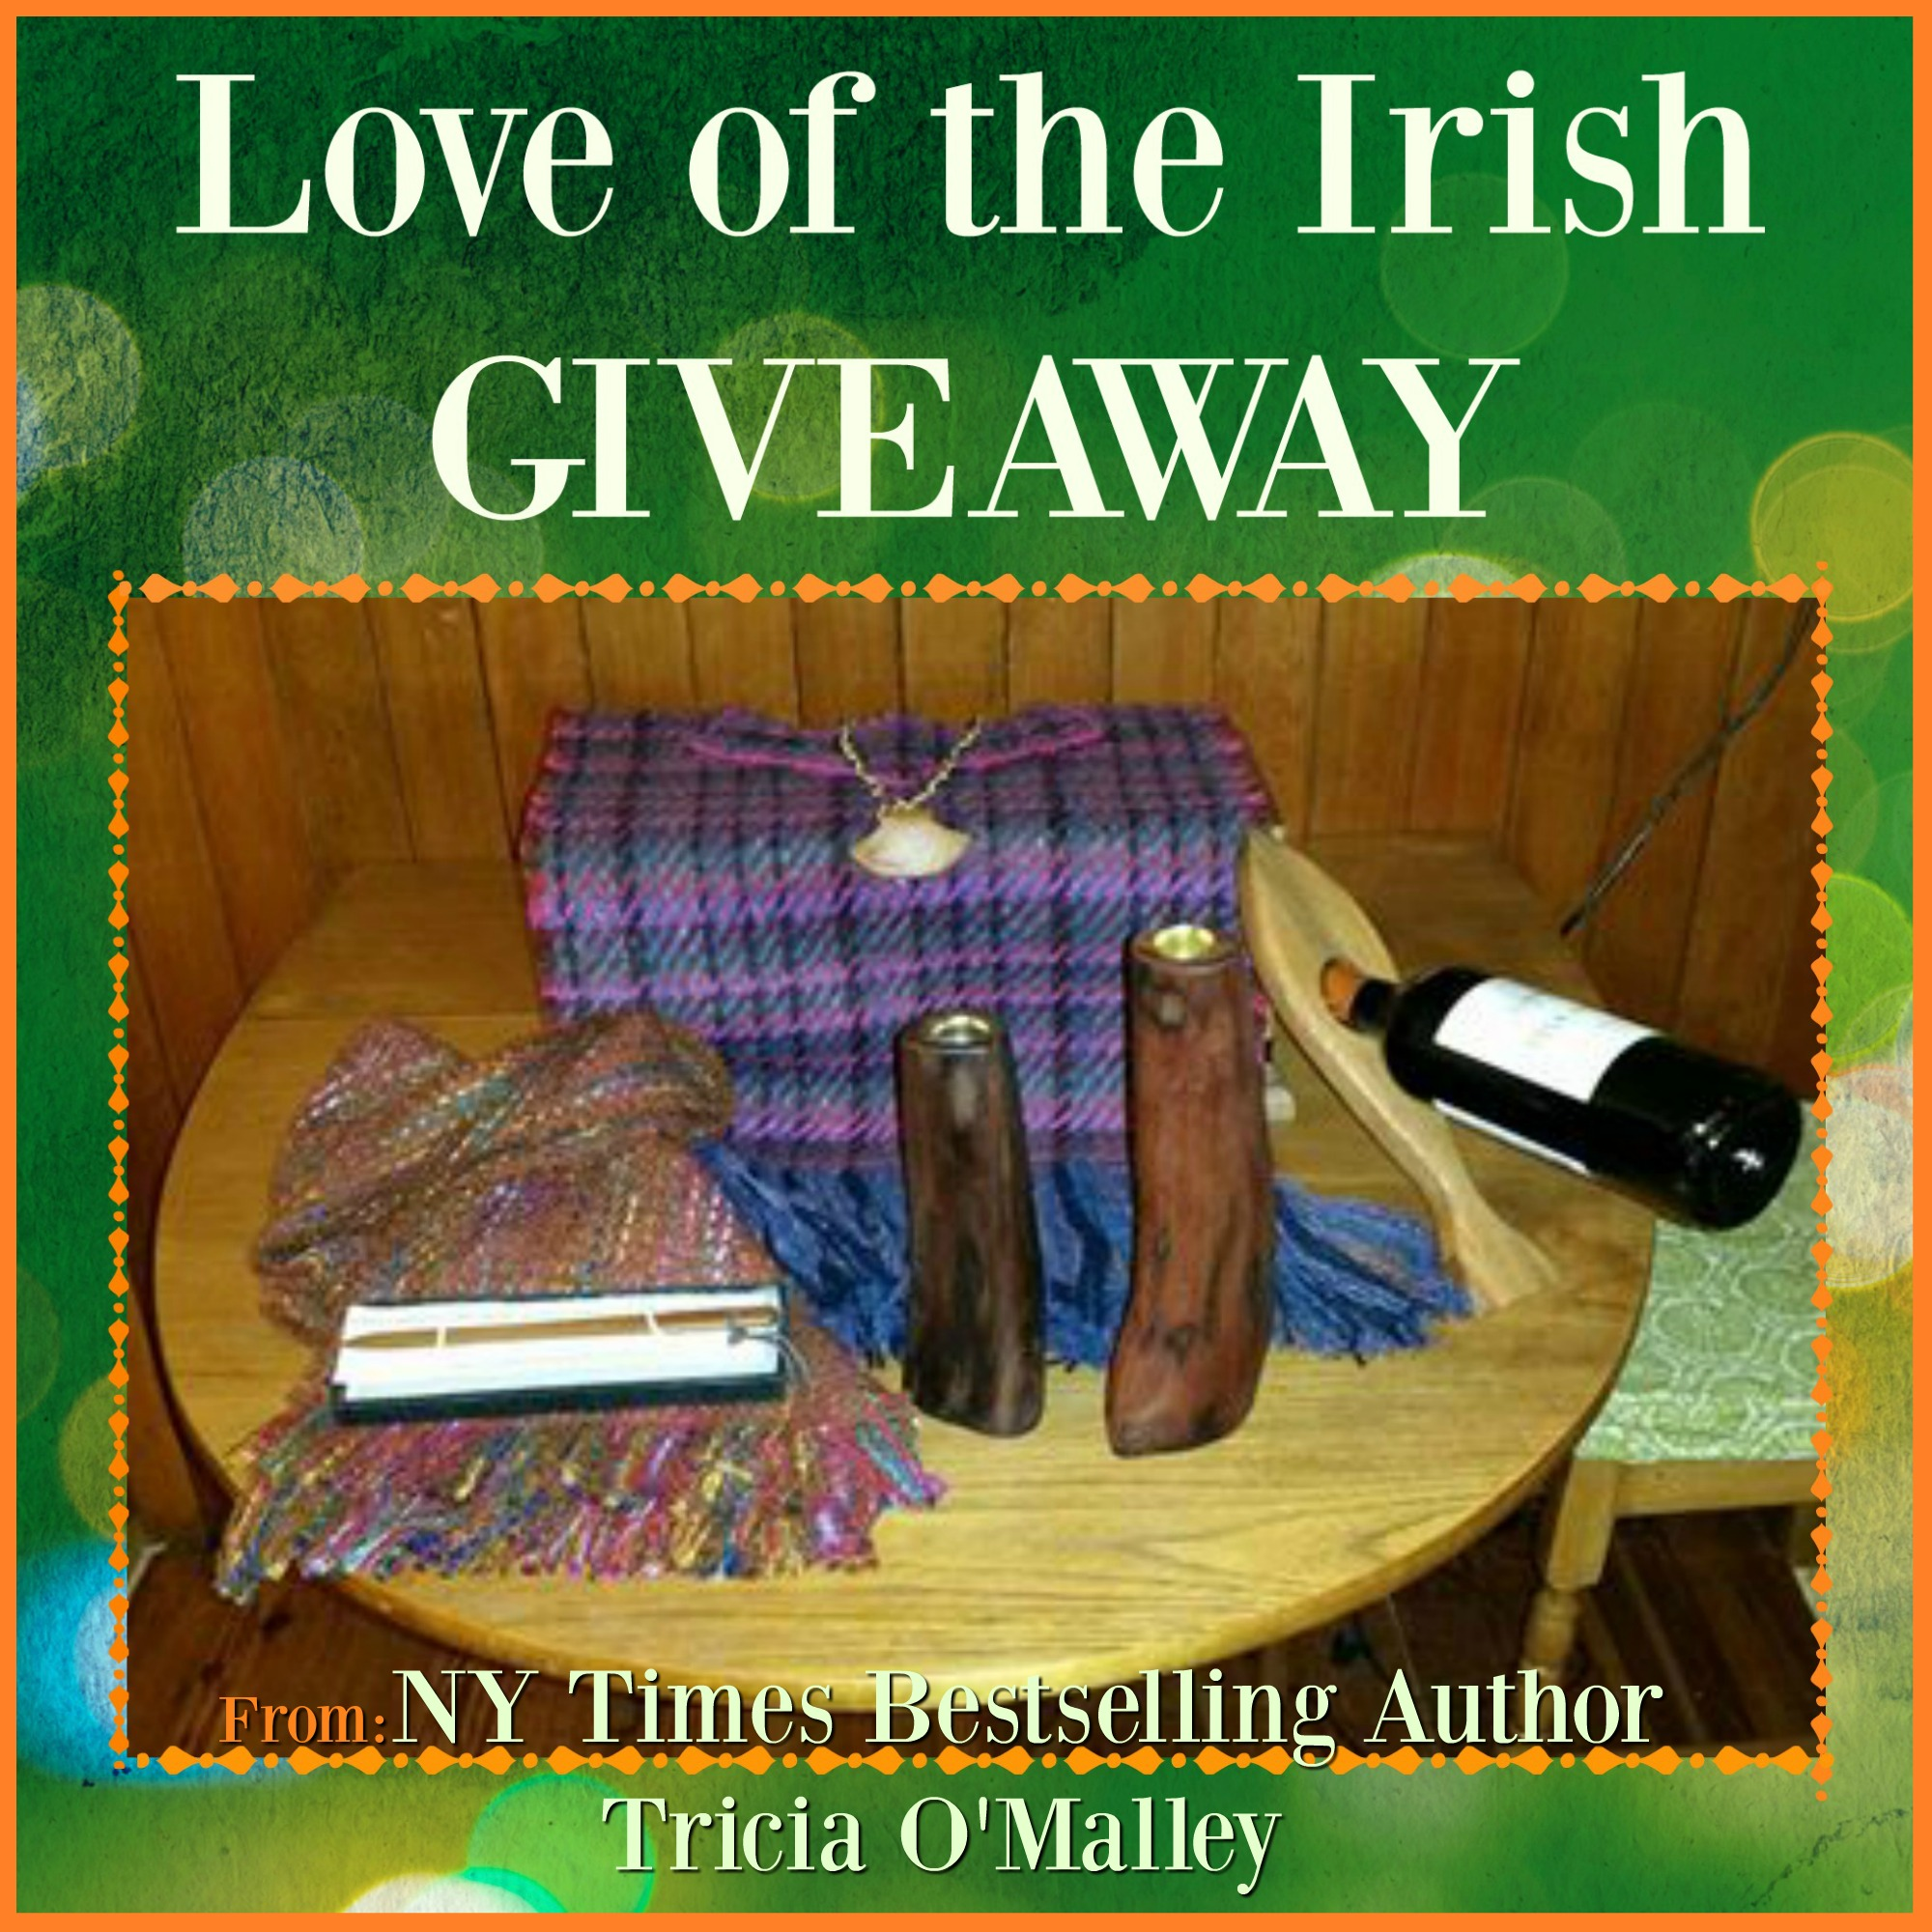 love of the irish giveaway 1(1).jpg